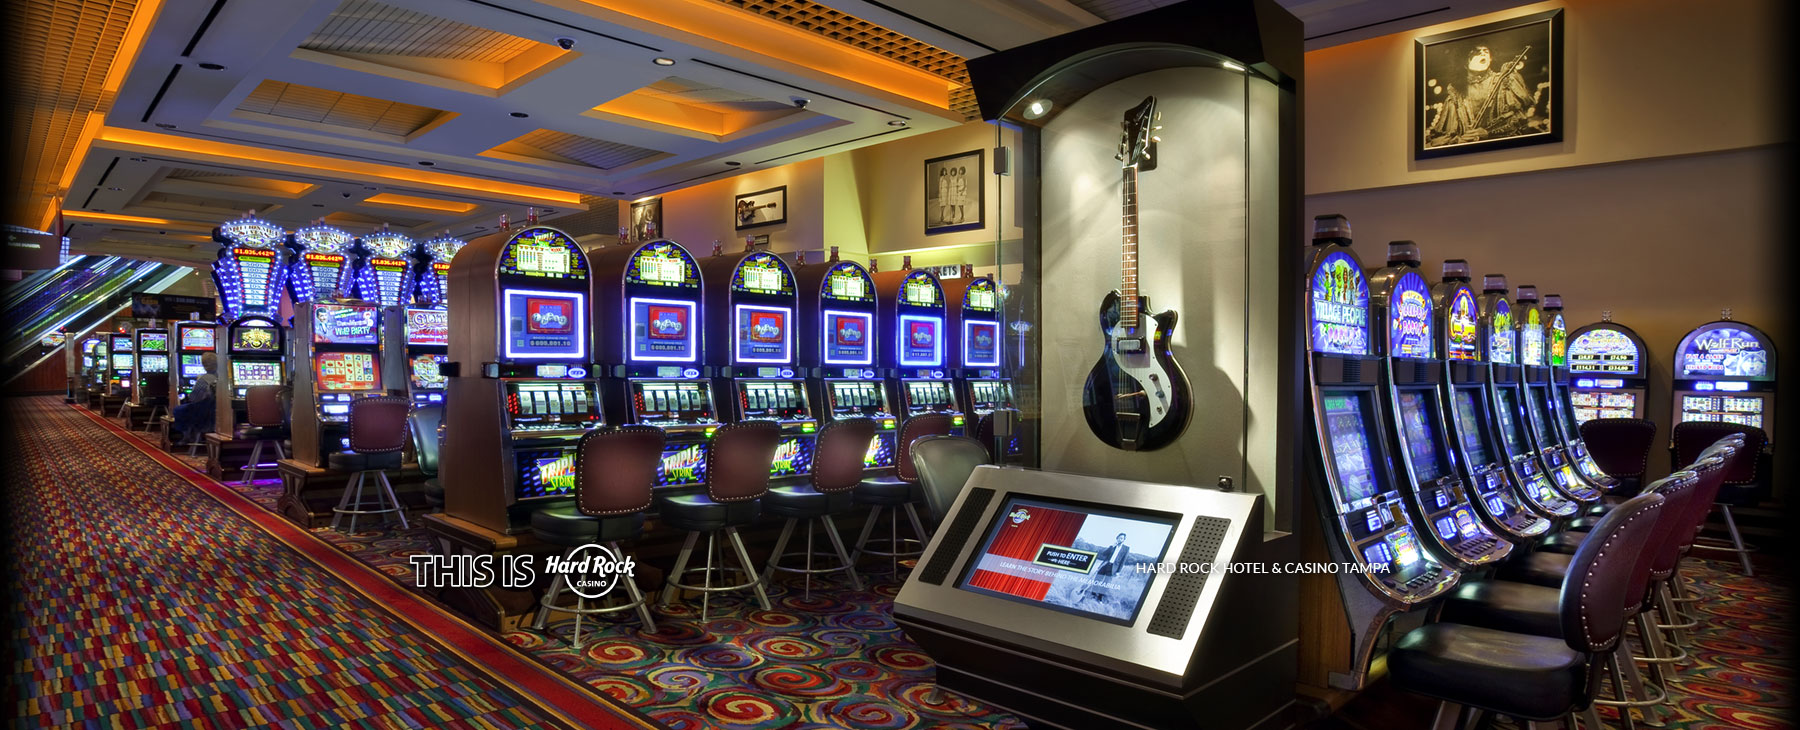 Hard rock casino cam free las vegas casino chips